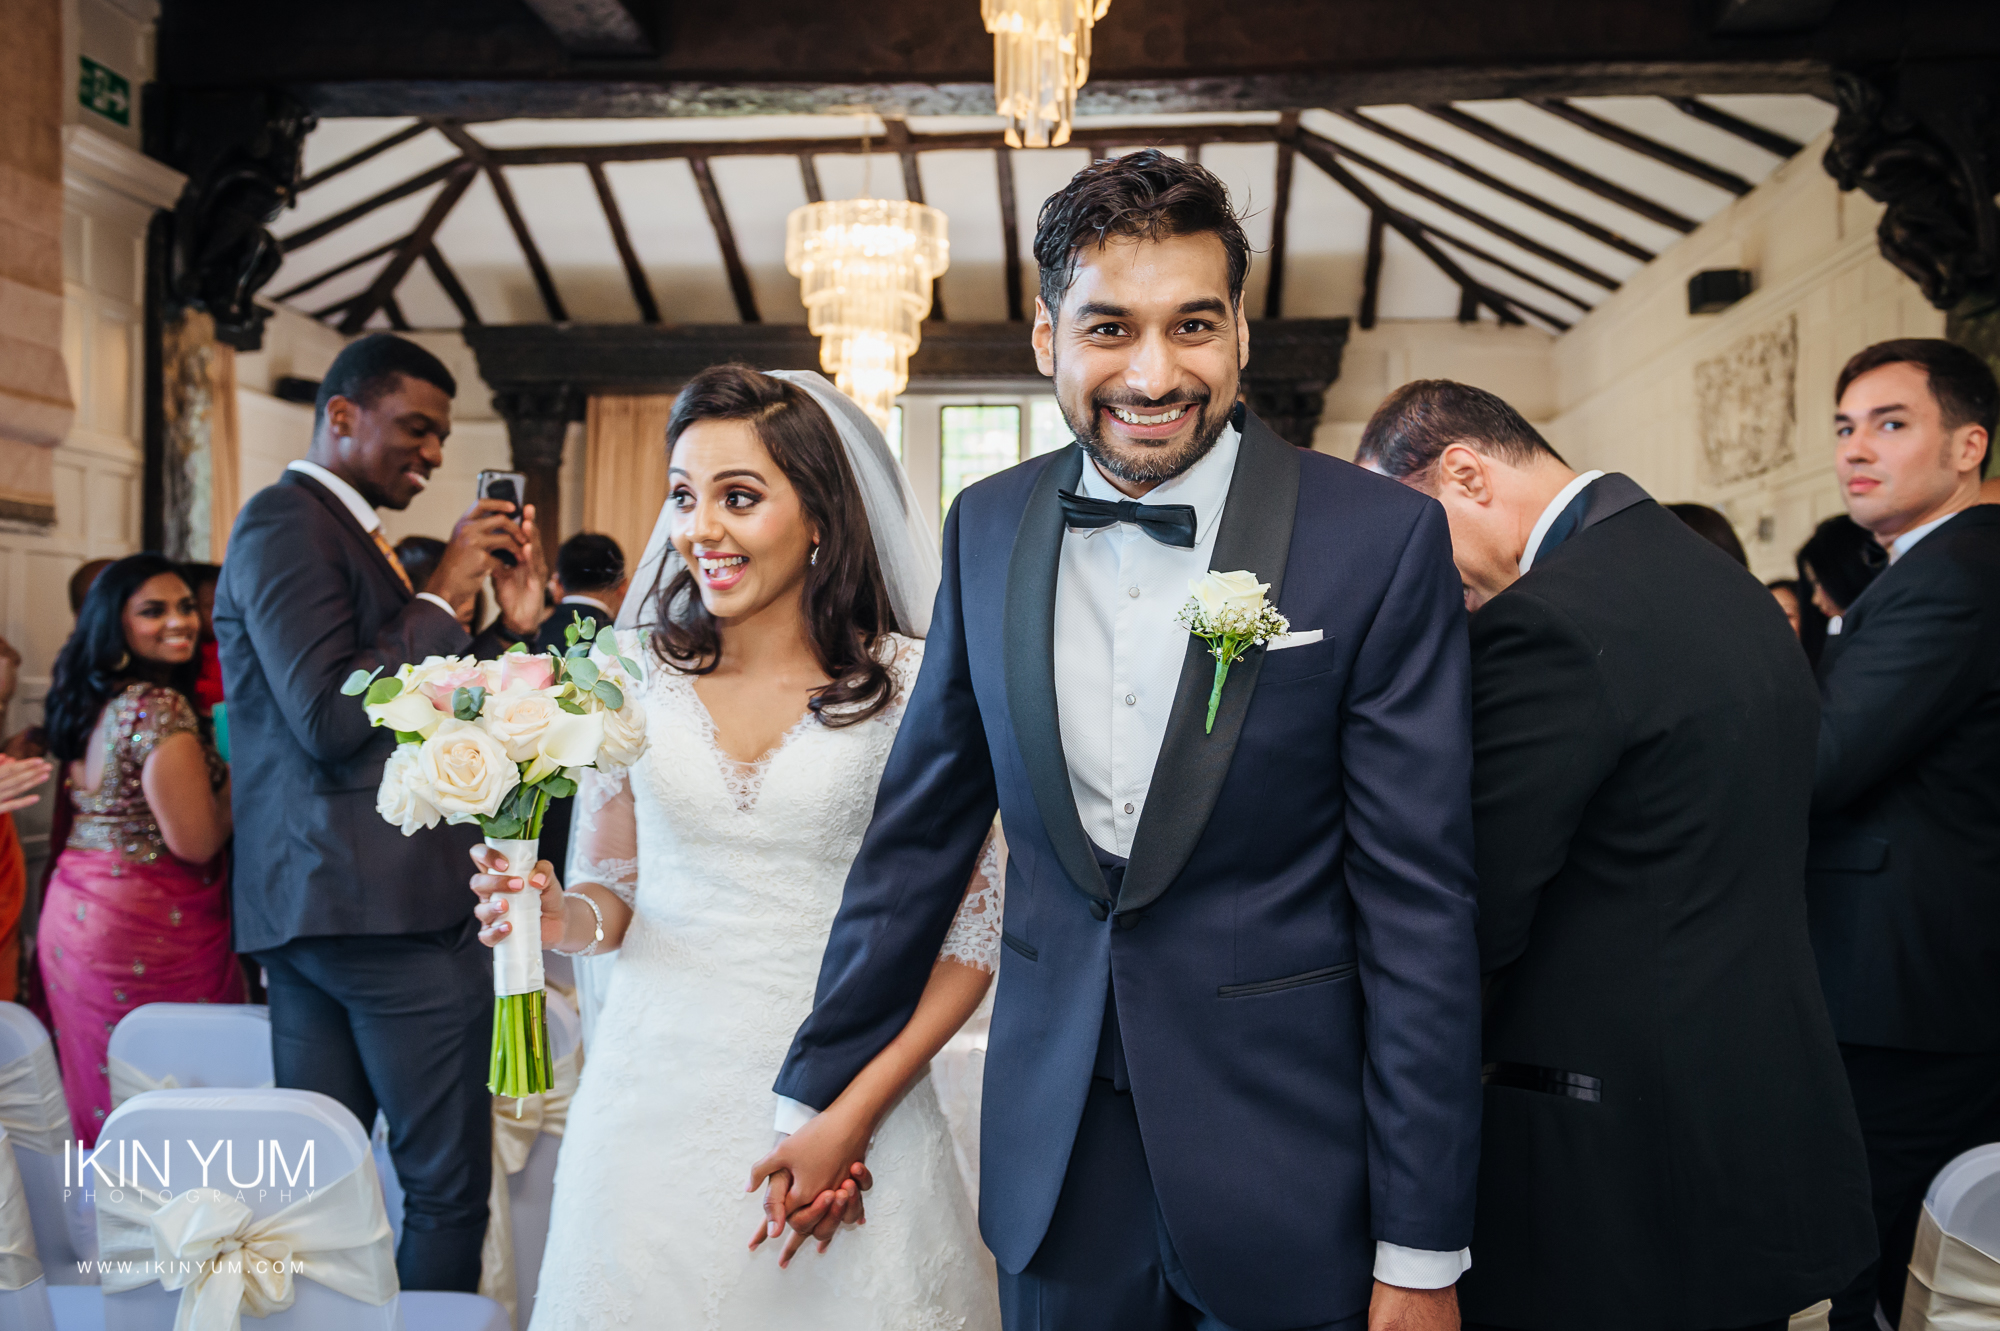 Laura Ashley Manor Wedding - Ikin Yum Photography-072.jpg